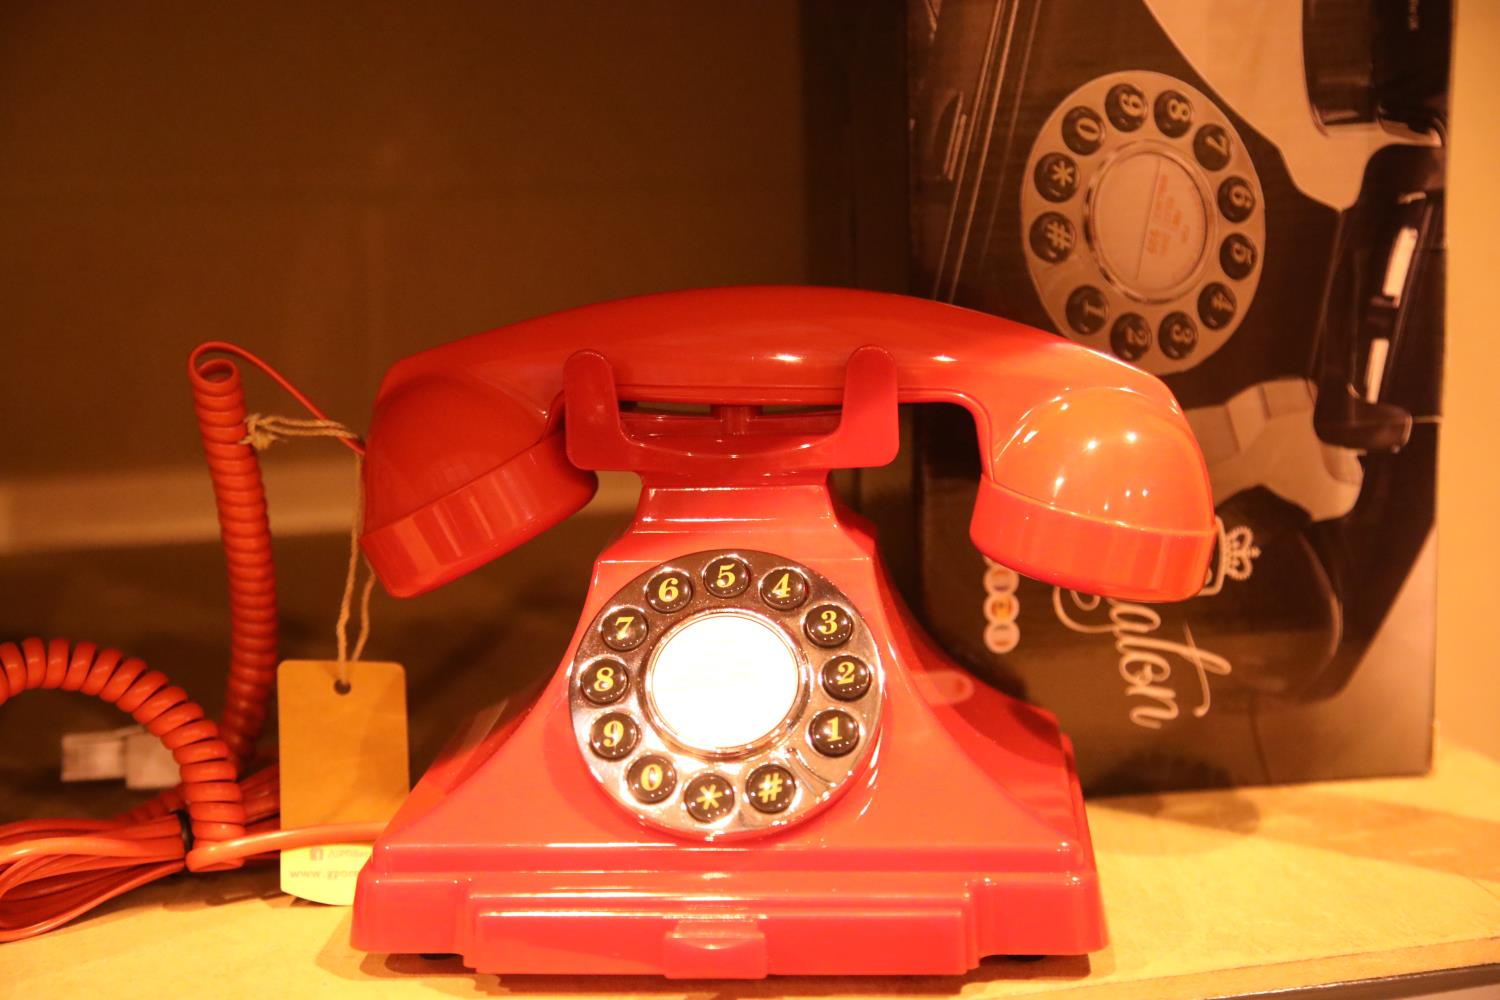 Red GPO Carrington, push button telephone in 1920s styling with pull out pad tray, compatible with